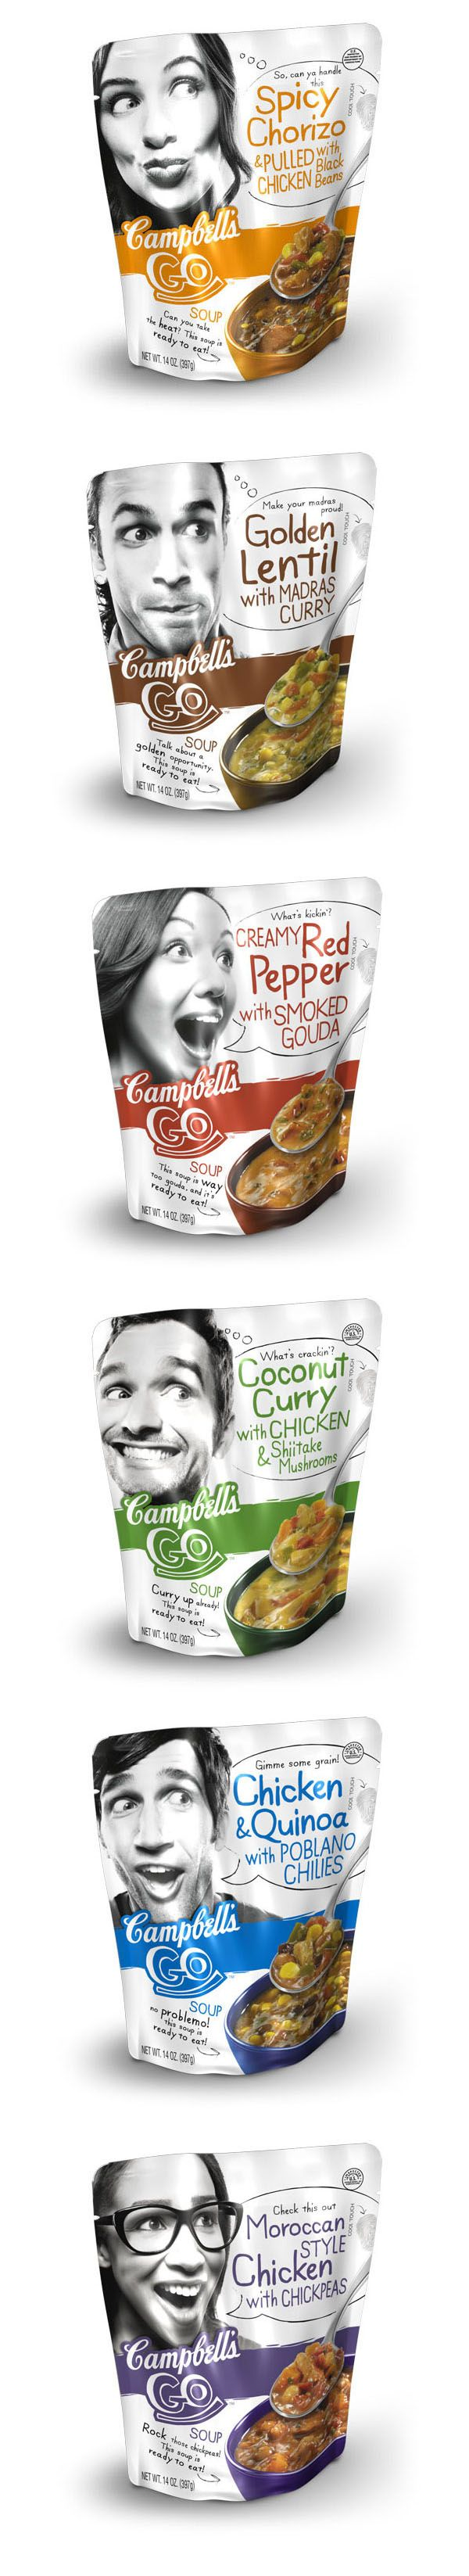 Campbell's GO! Soup -- interesting that they're targeting millennials with soup. Does this new packaging make you want to dig right in?